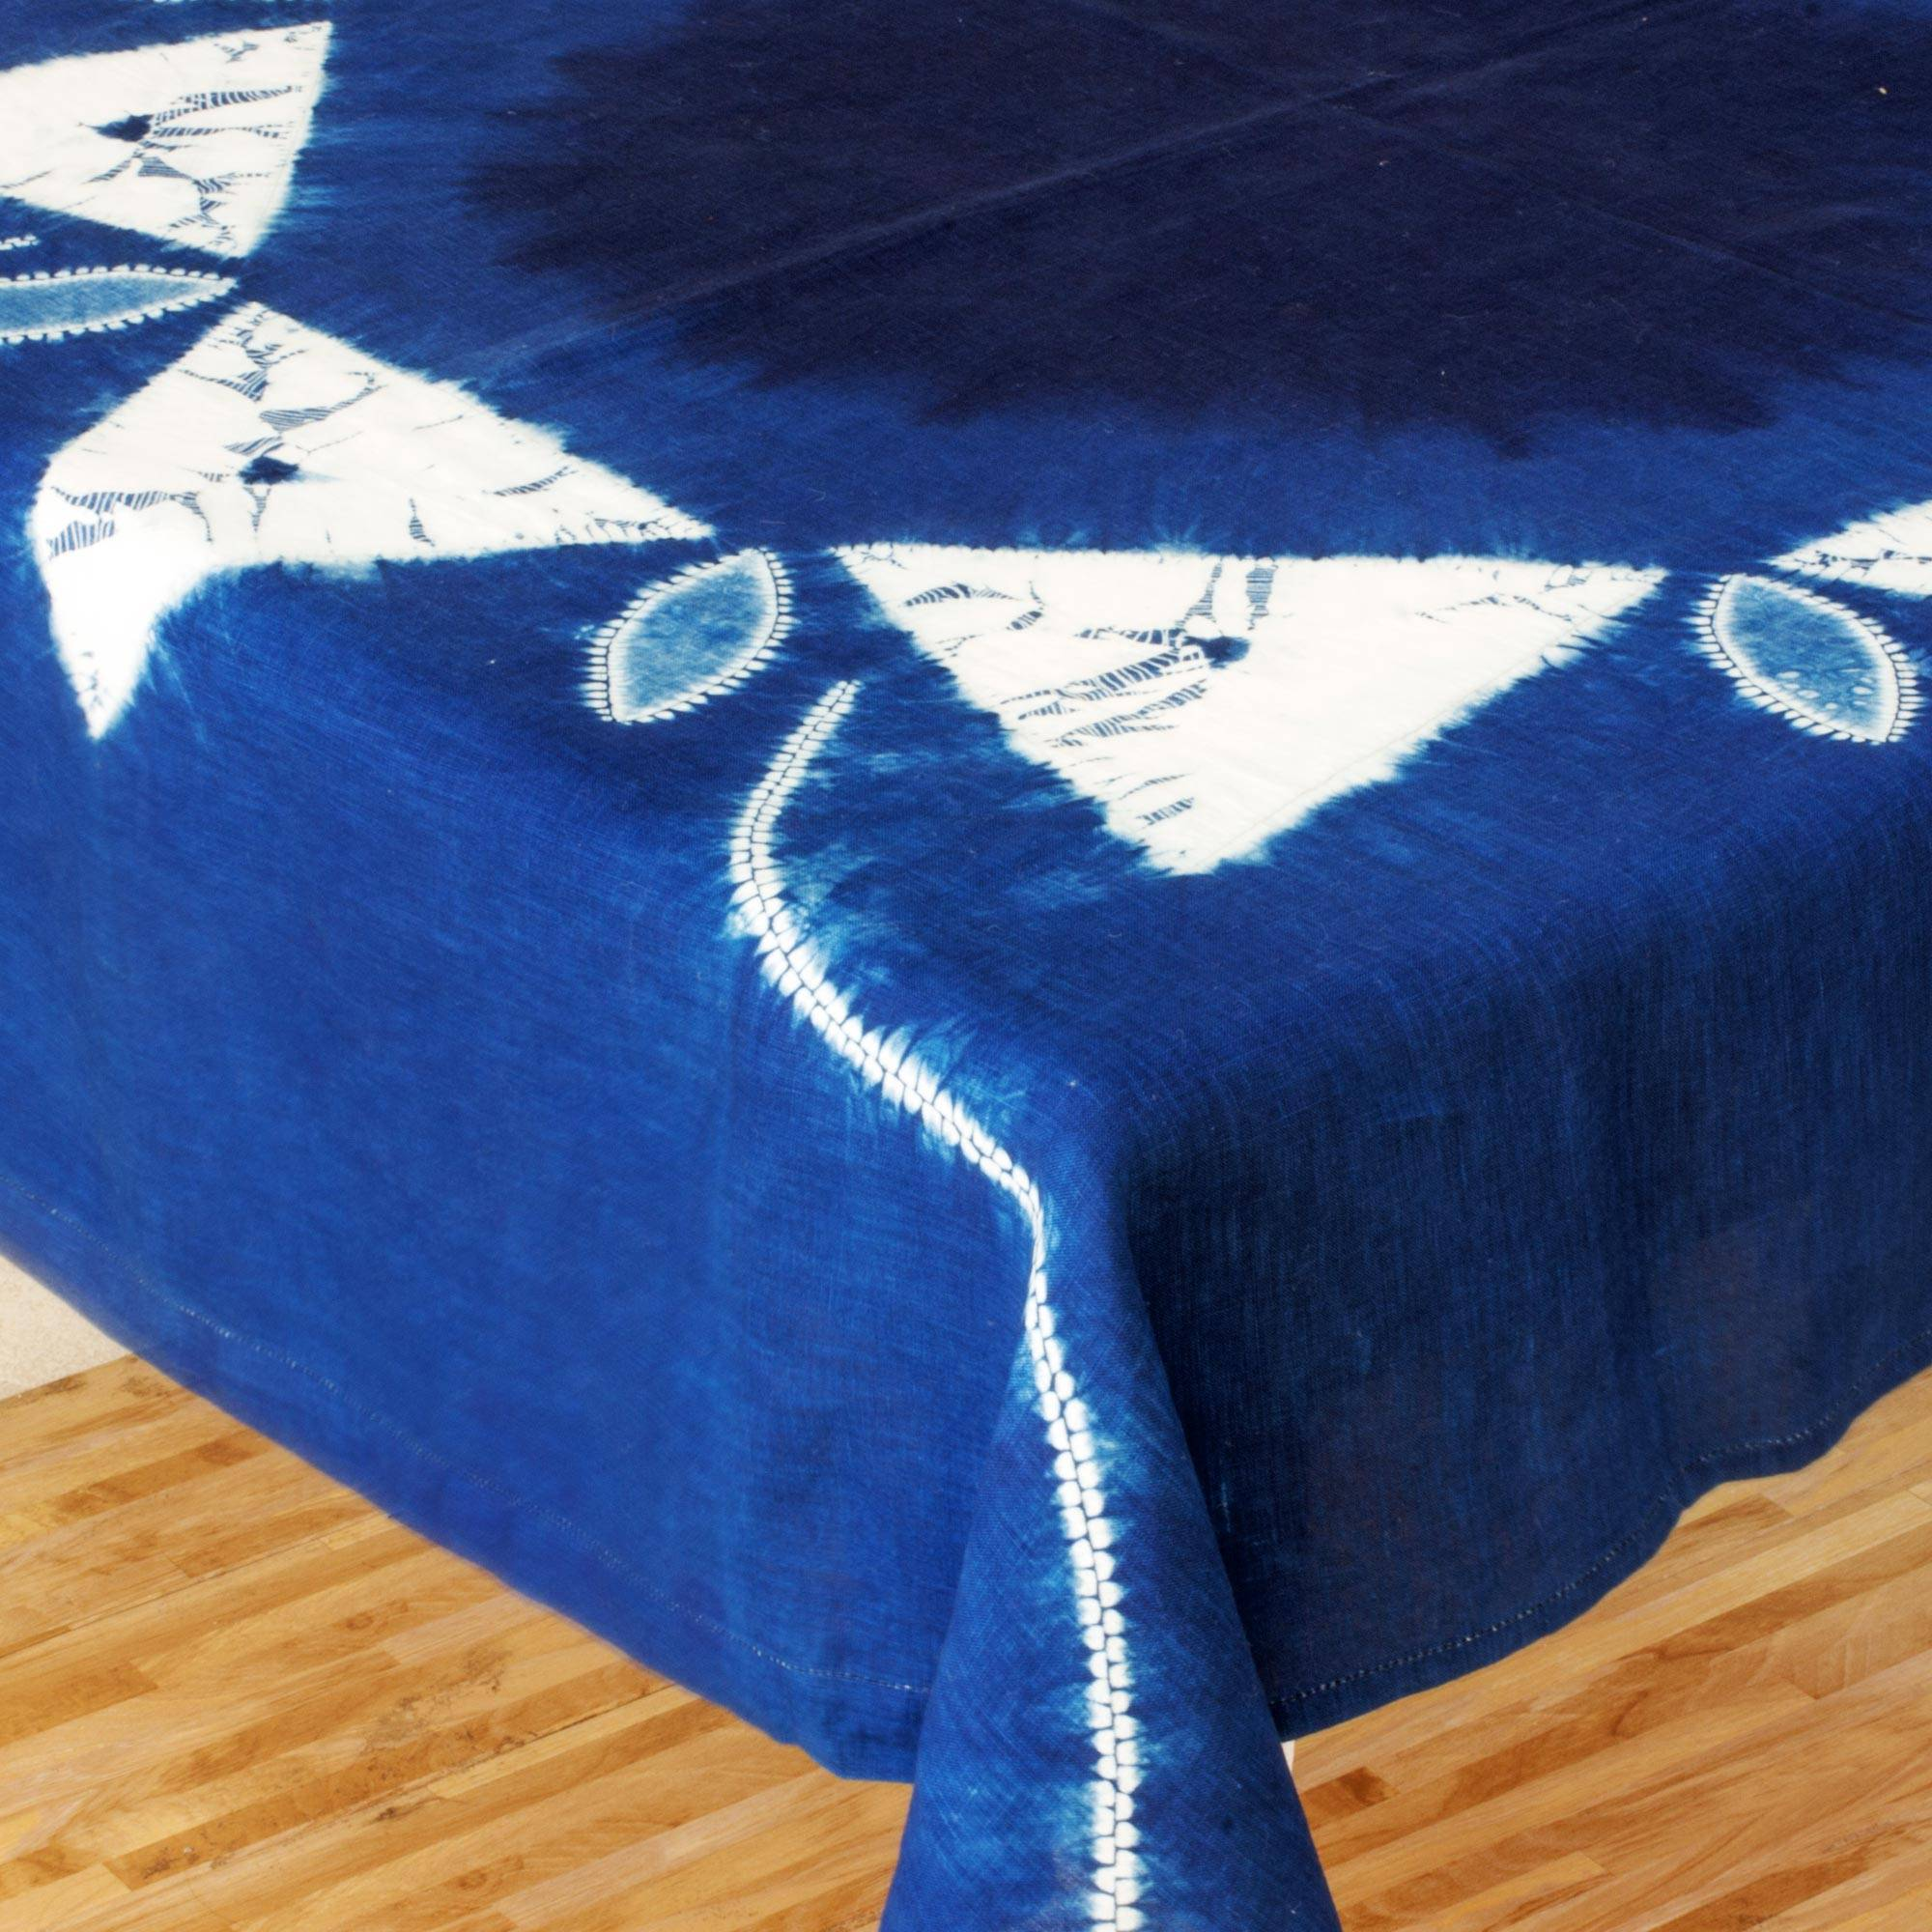 Sumpango Kites White Kites on Indigo Cotton Batik Hand Crafted Table Cloth 4th of July Party